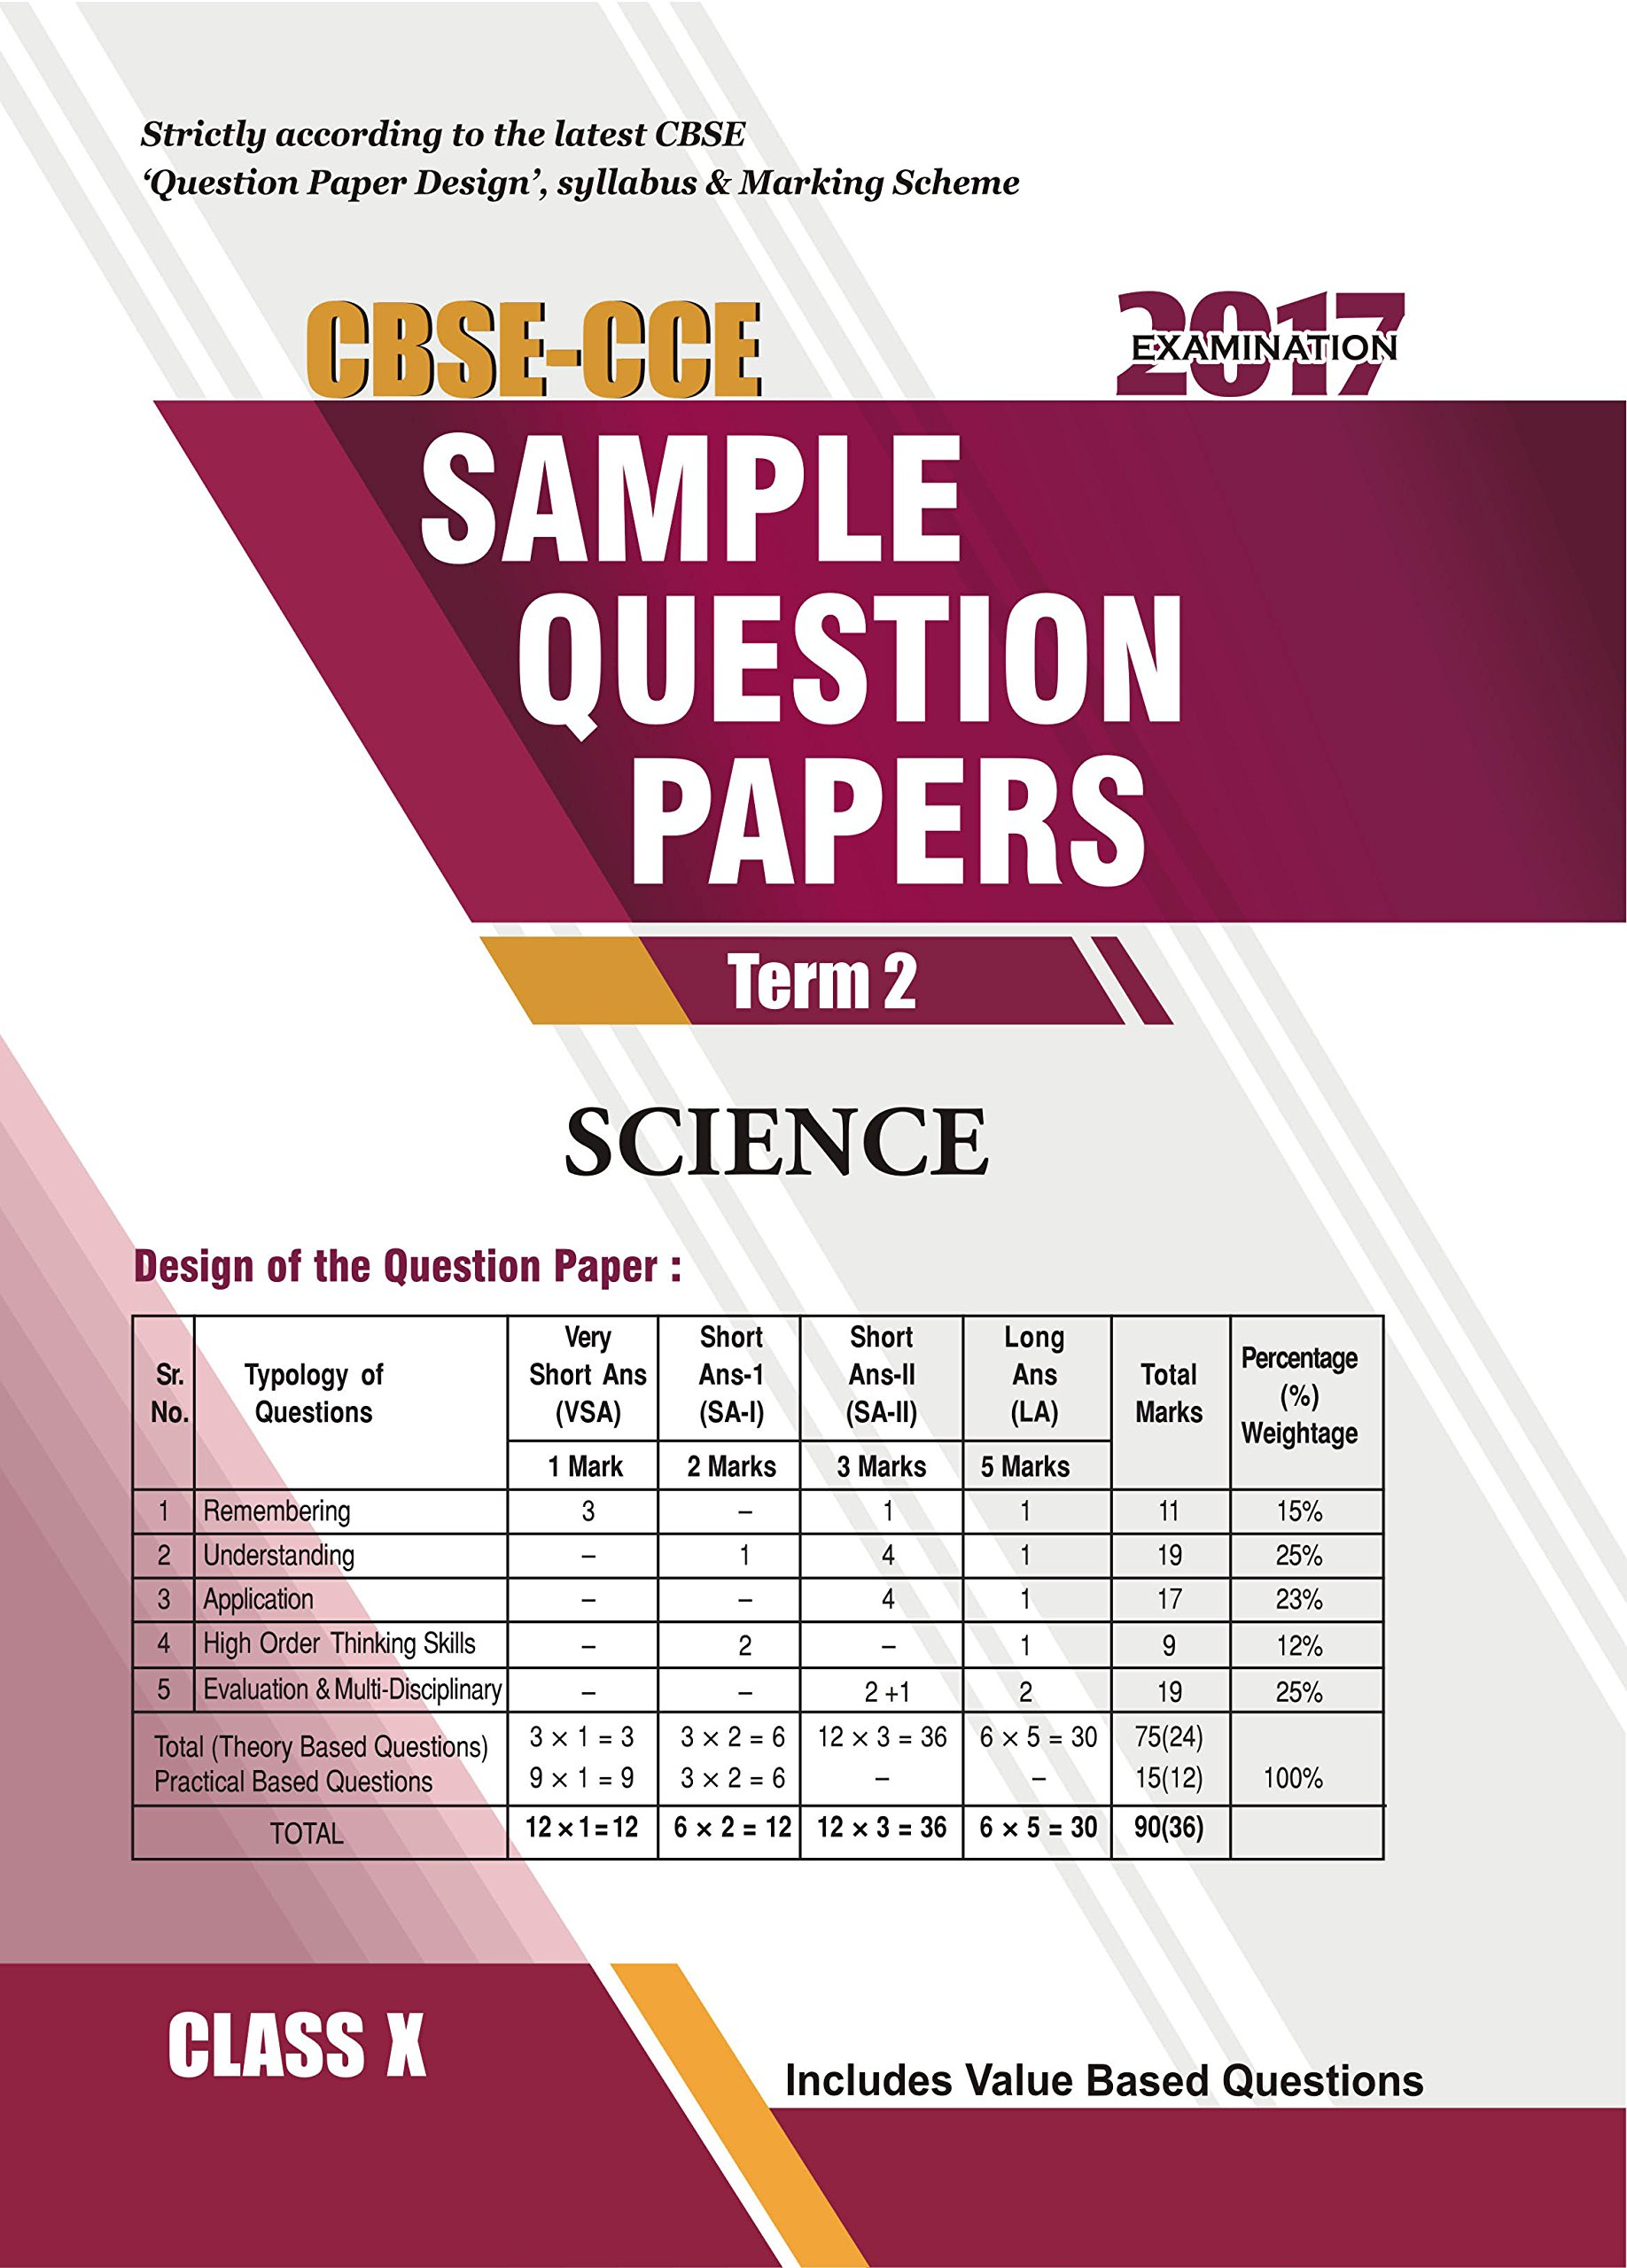 Amazon buy cbse sample question paper science class 10 2017 amazon buy cbse sample question paper science class 10 2017 examination book online at low prices in india cbse sample question paper science class malvernweather Images